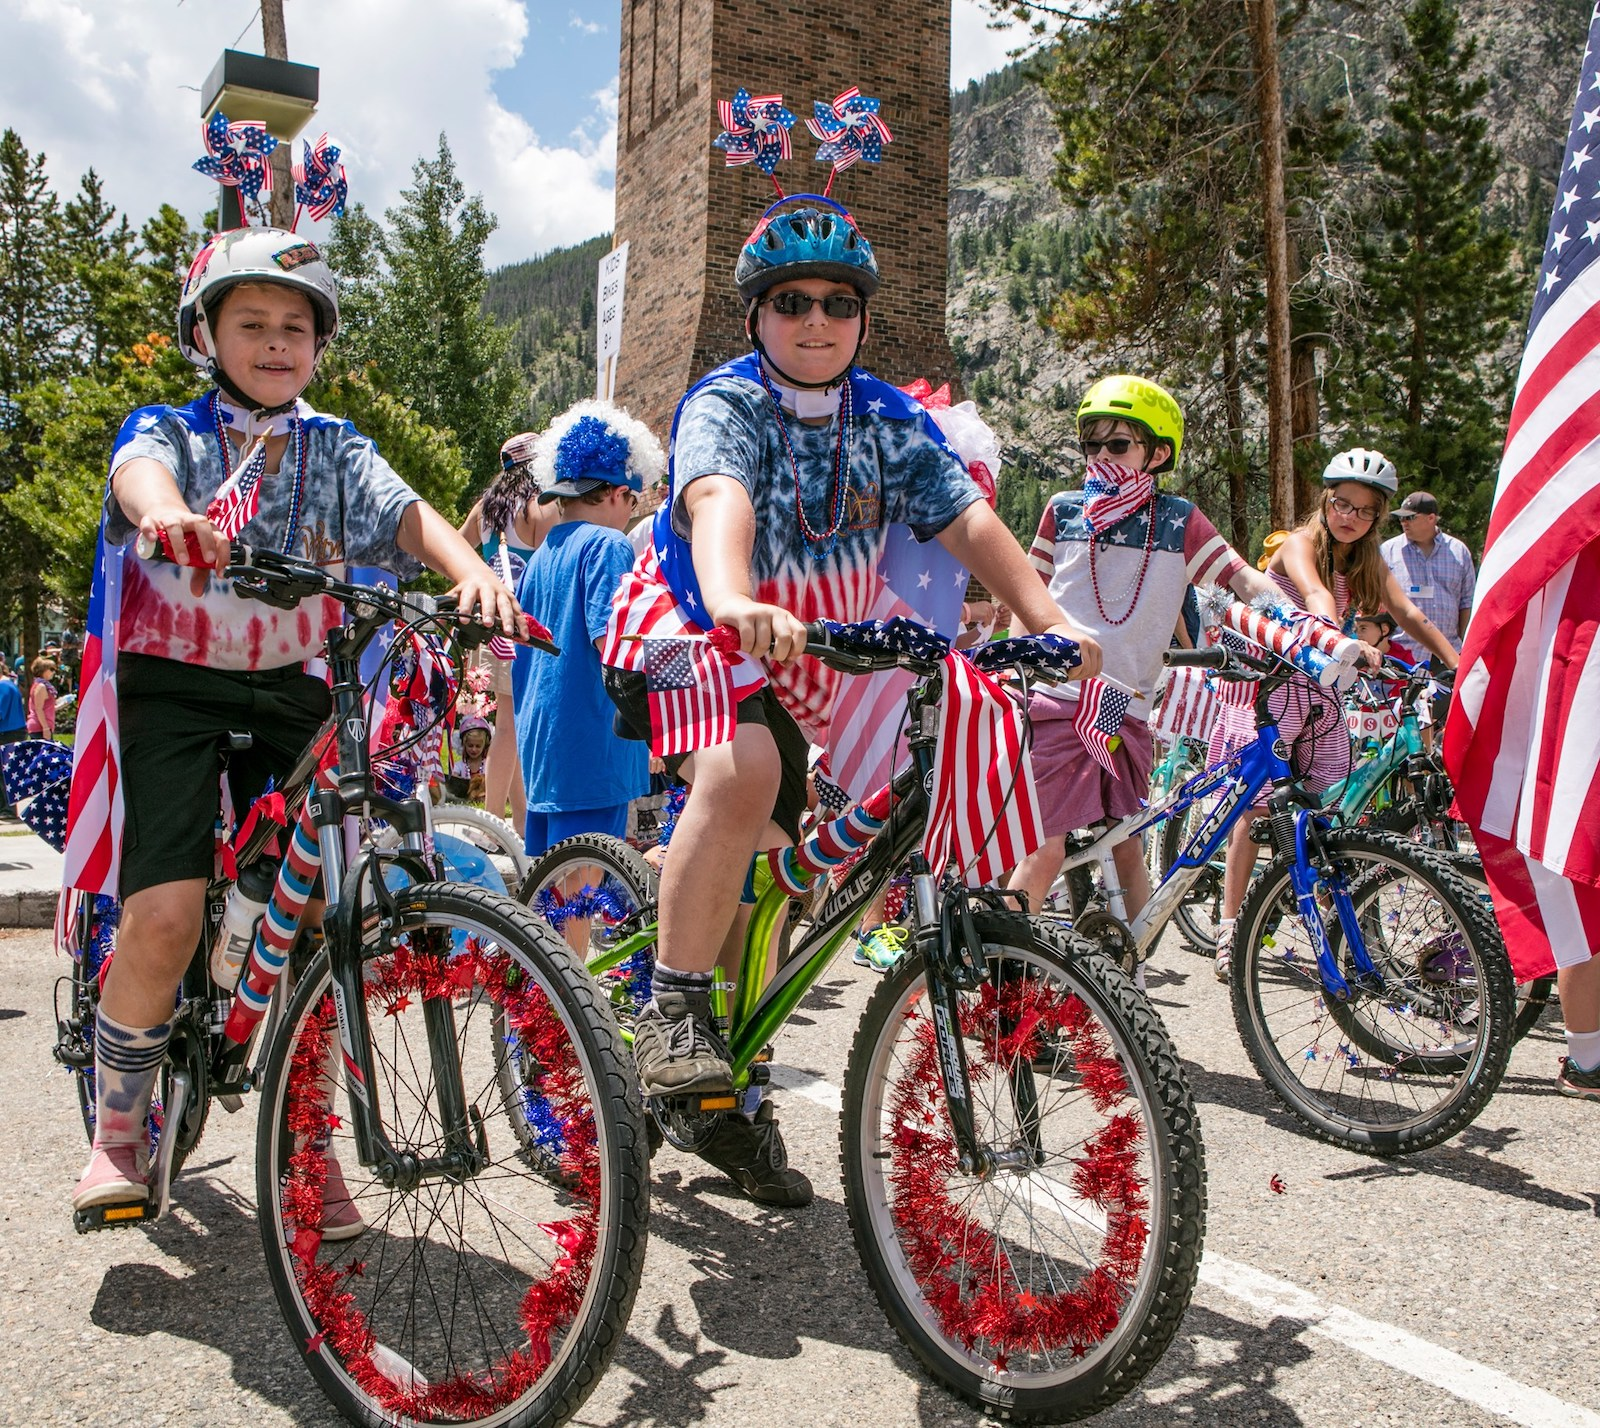 Image of two kids dressed up for July 4th in Frisco, Colorado